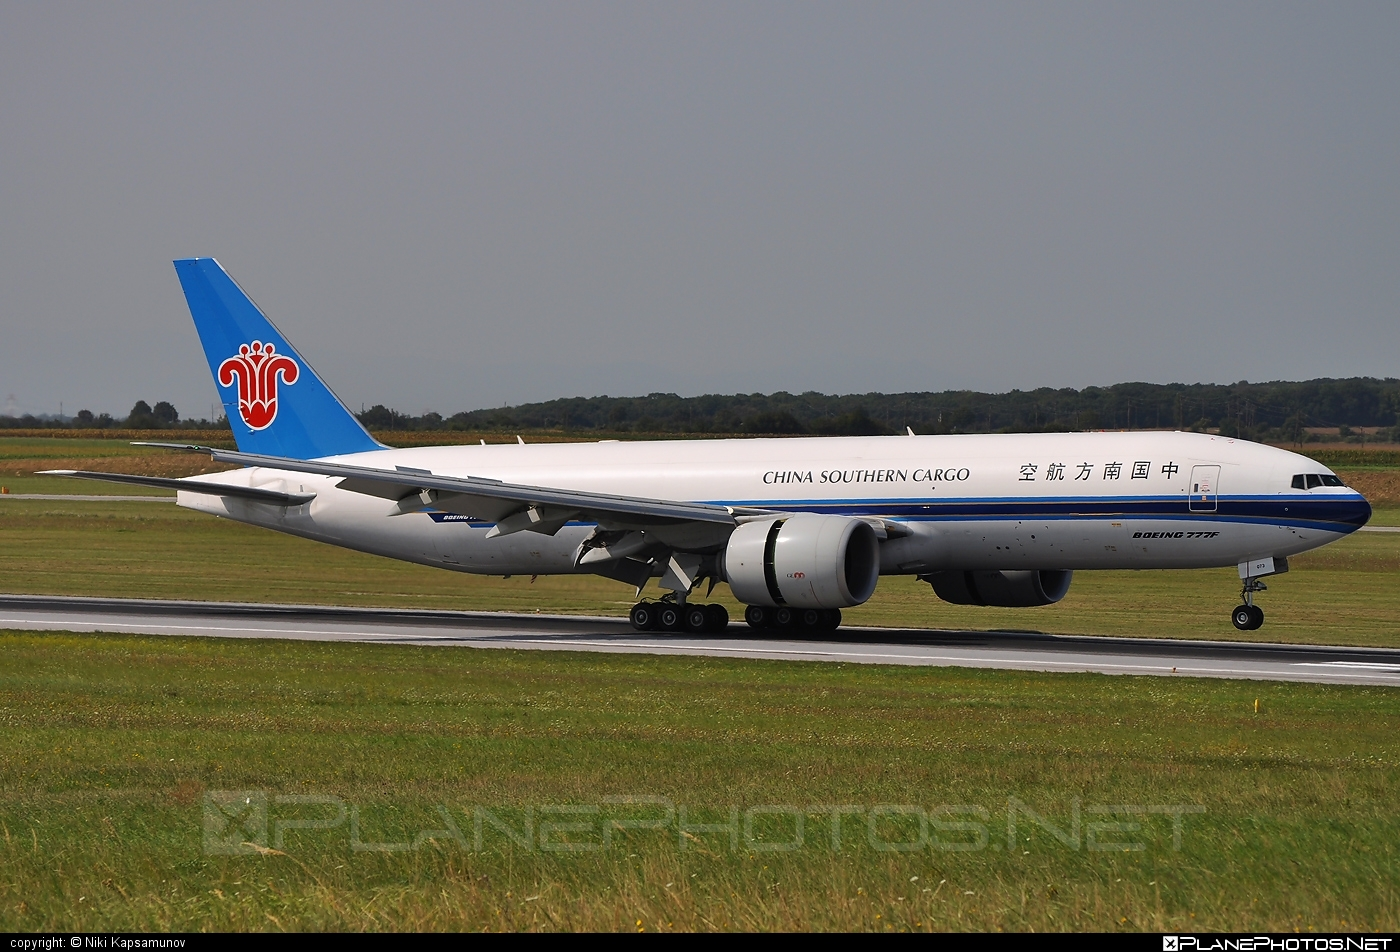 Boeing 777F - B-2073 operated by China Southern Cargo #b777 #b777f #b777freighter #boeing #boeing777 #tripleseven